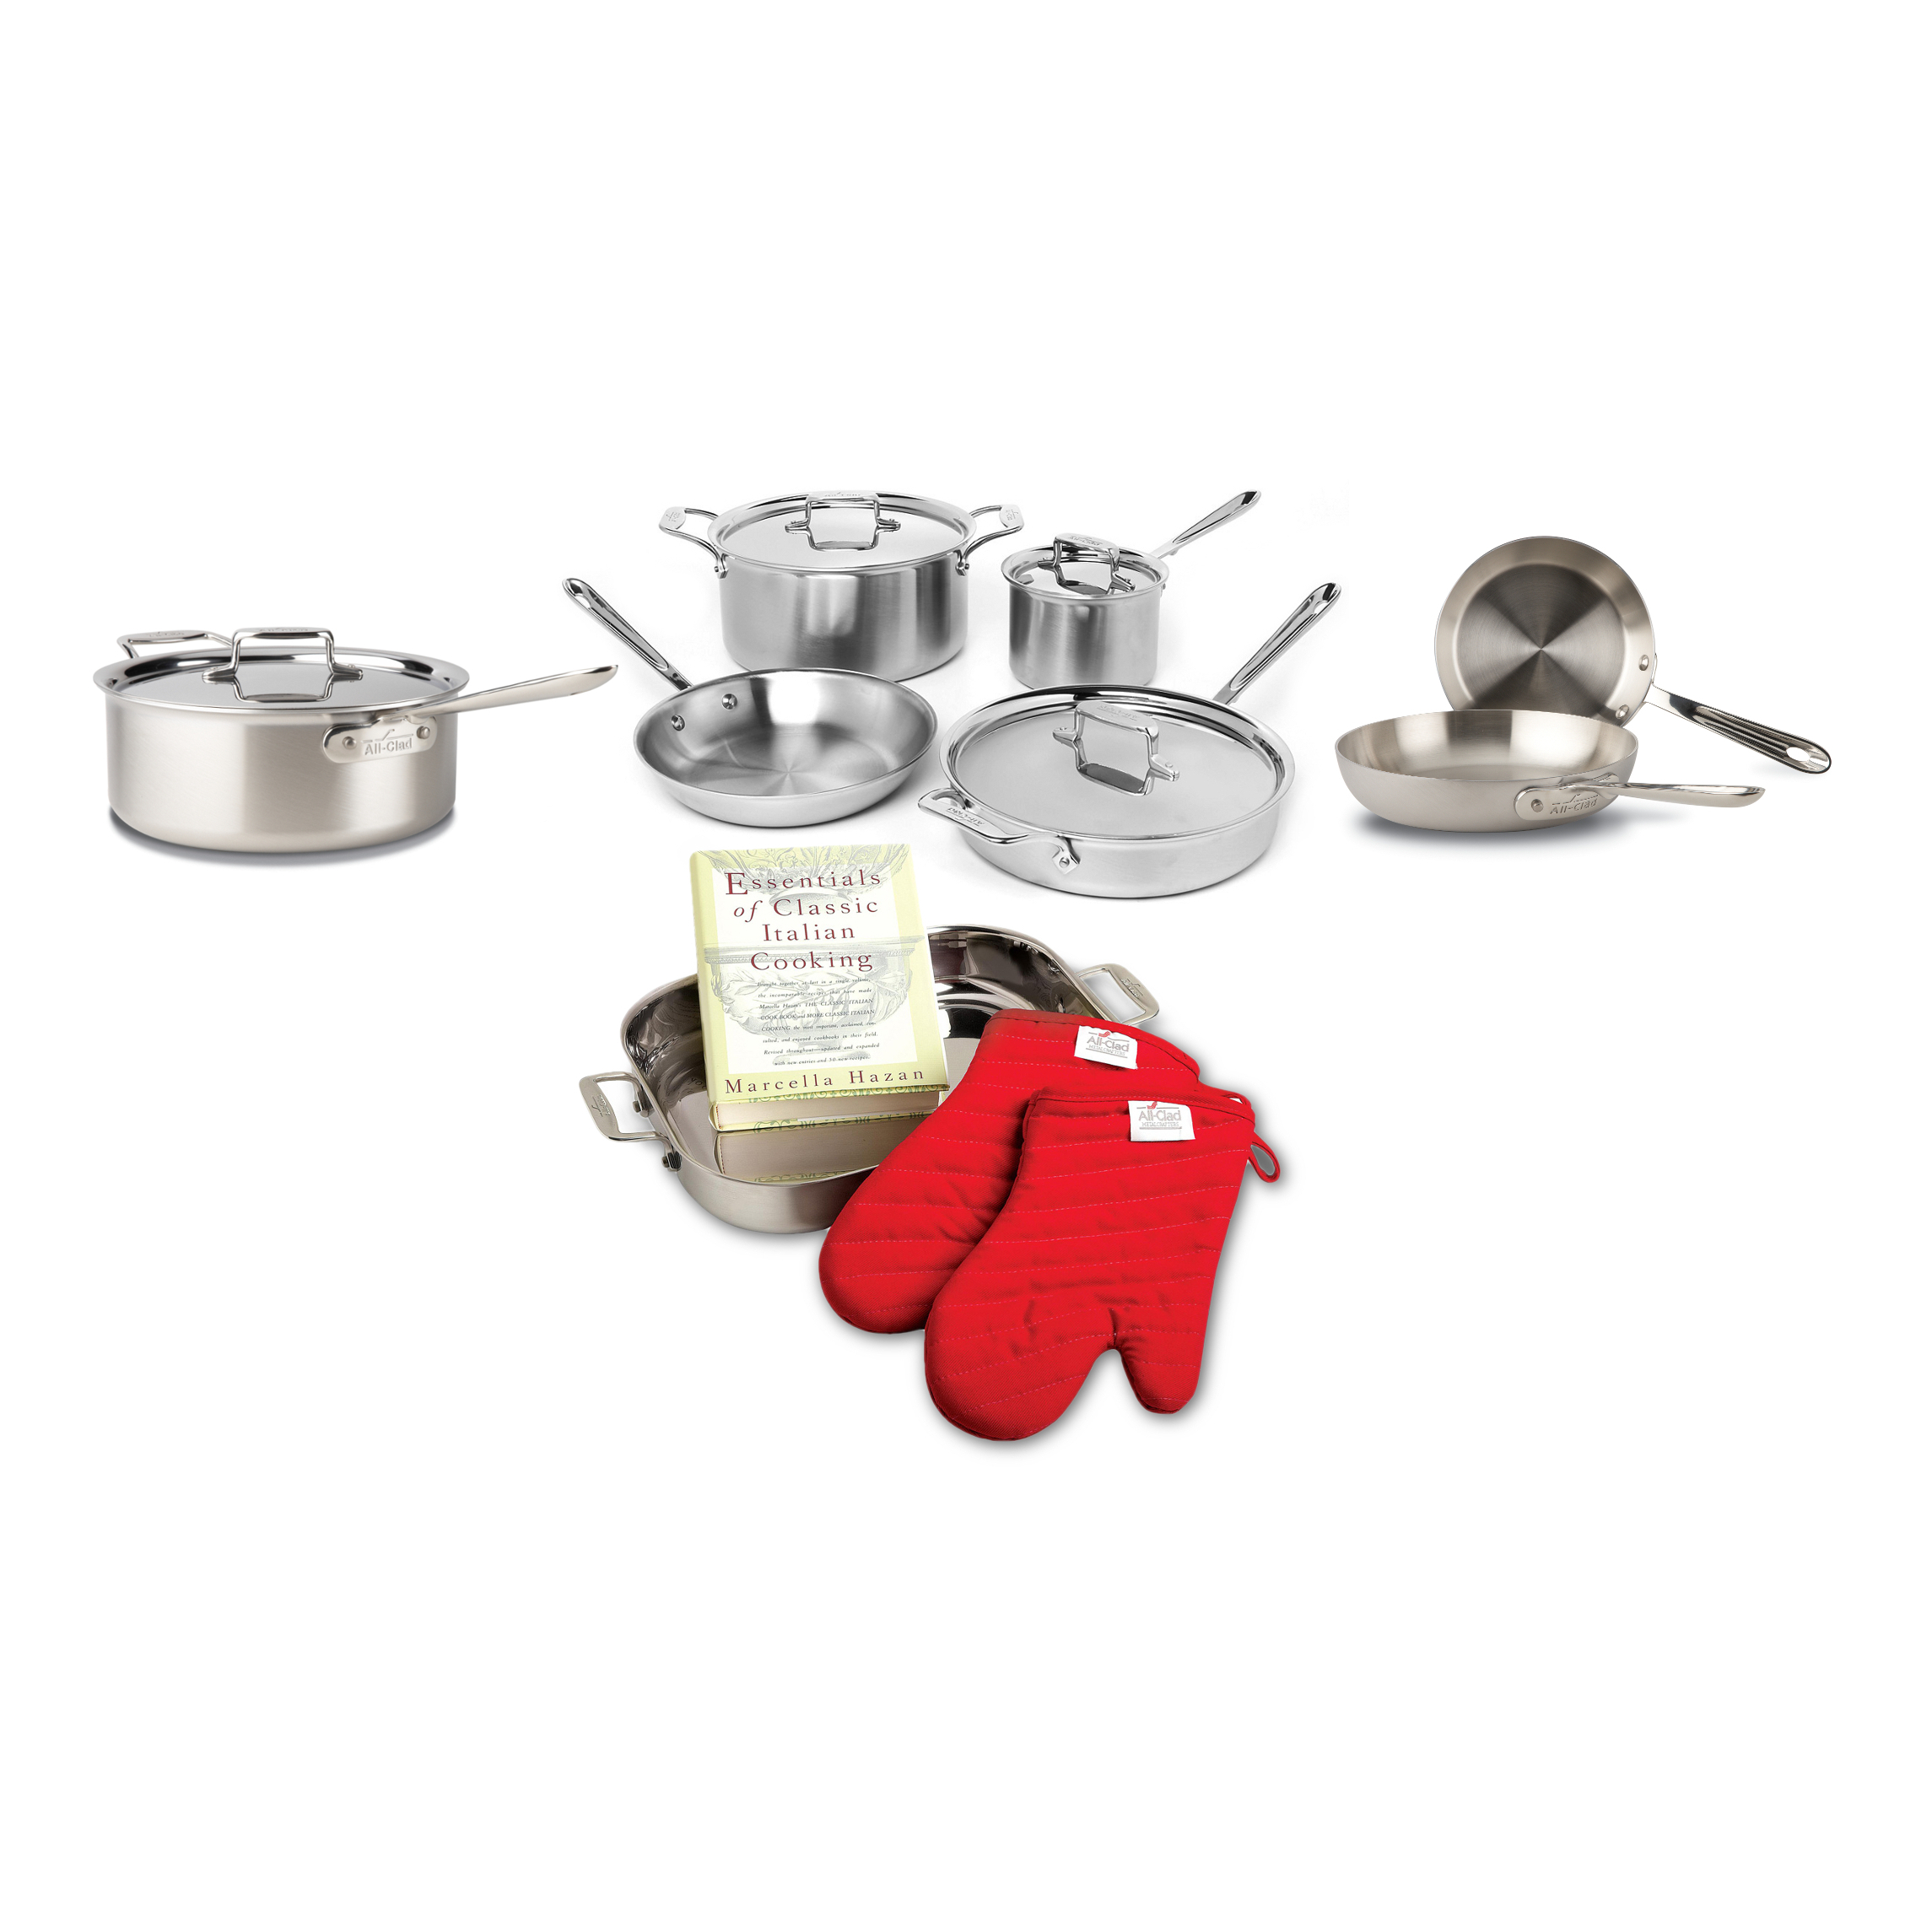 All-Clad D5 Brushed 18/10 Stainless Steel 12 Piece Cookware Set with Cookbook and Oven Mitts